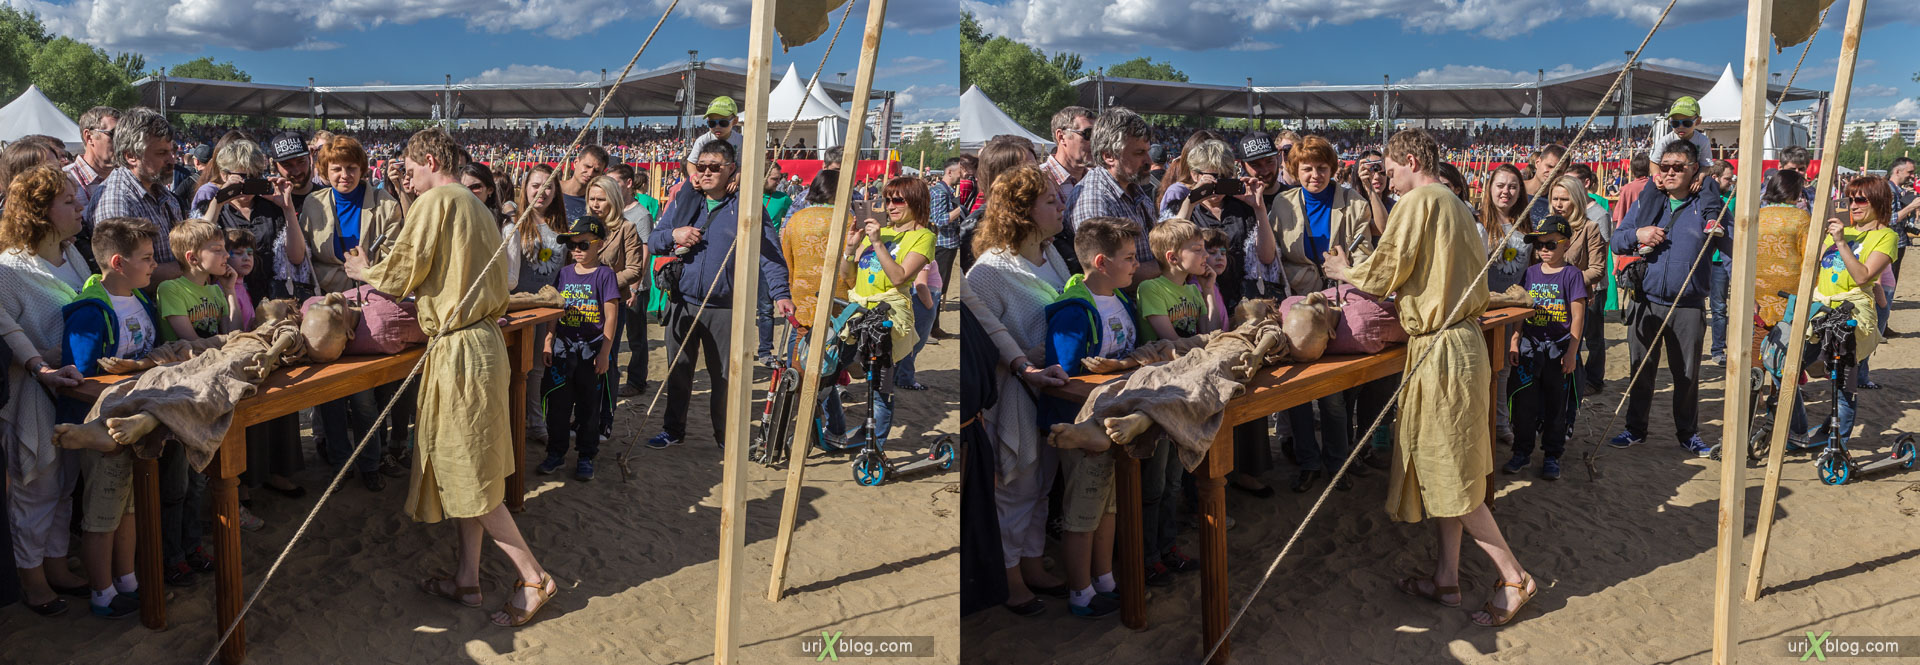 Times and Epochs, festival, Kolomenskoye park, Moscow, Russia, 3D, stereo pair, cross-eyed, crossview, cross view stereo pair, stereoscopic, 2015